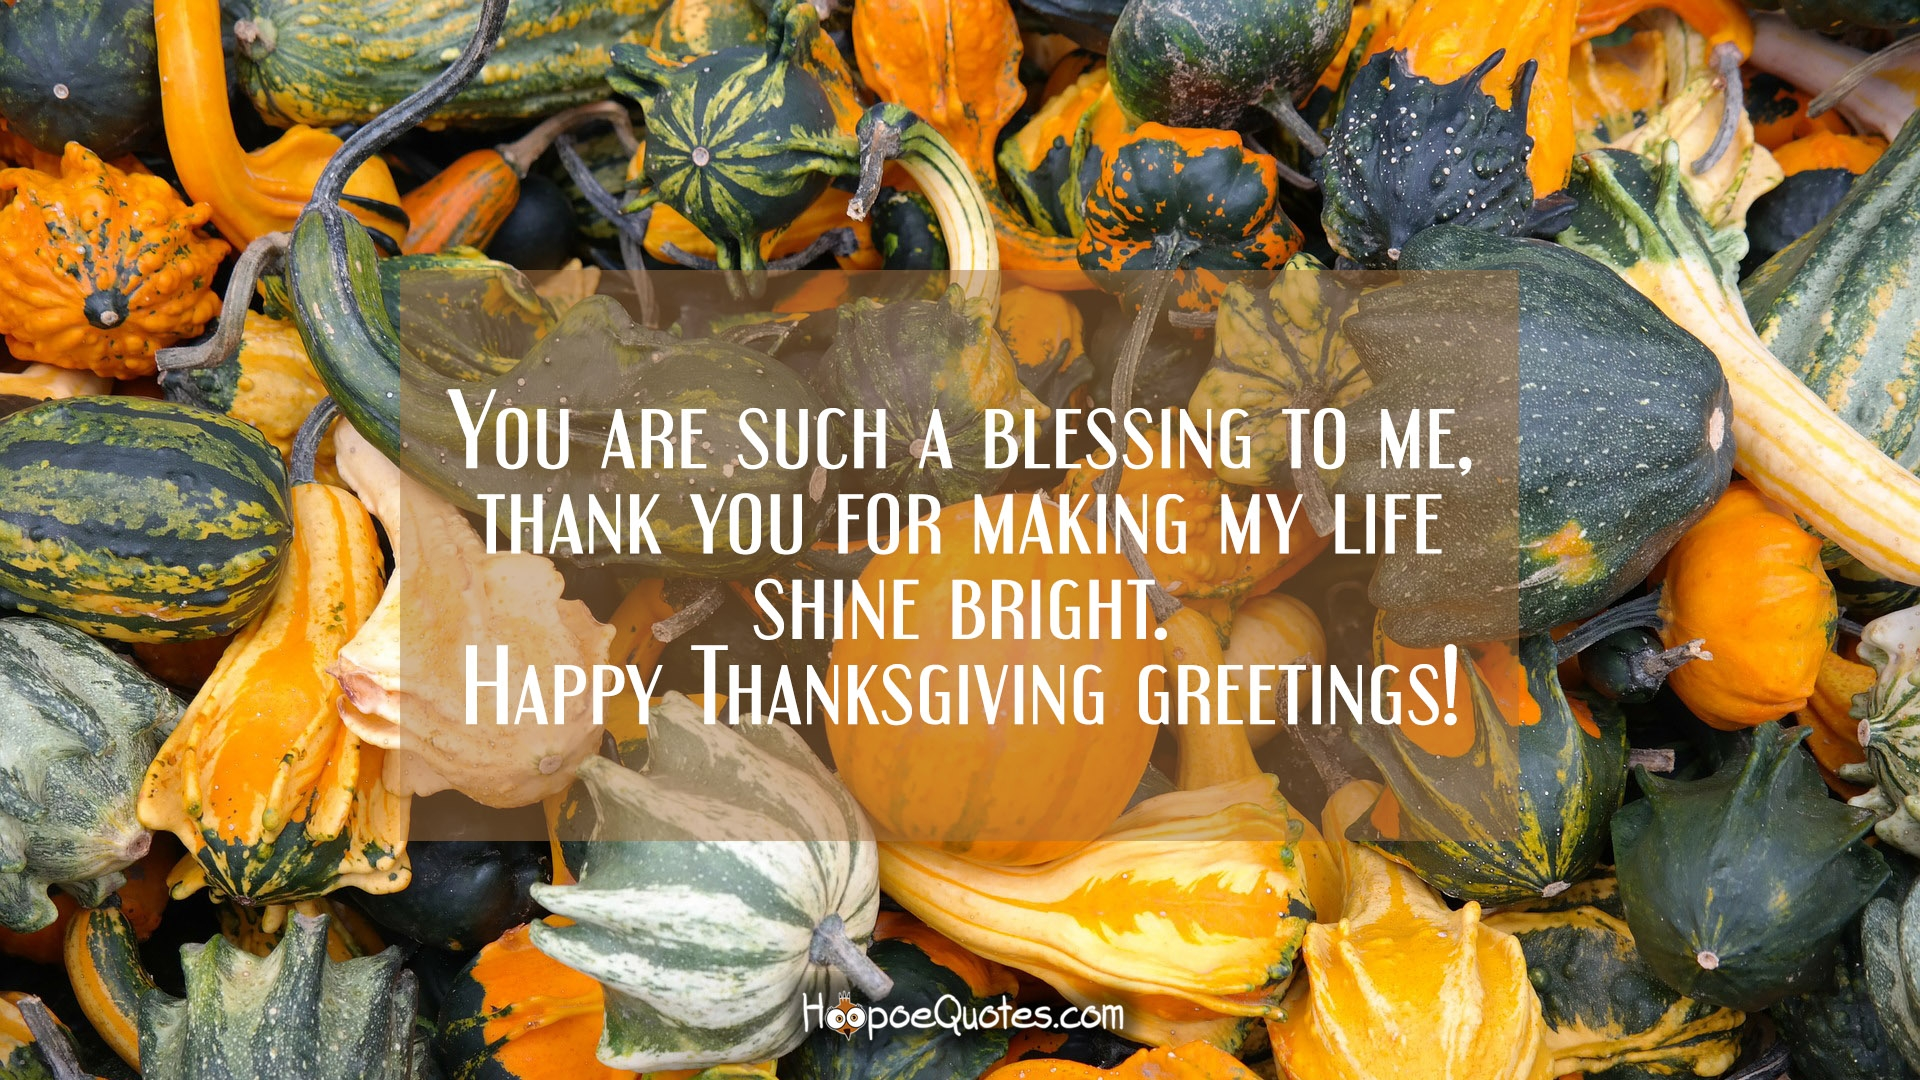 Thanksgiving messages hoopoequotes you are such a blessing to me thank you for making my life shine bright happy thanksgiving greetings kristyandbryce Gallery